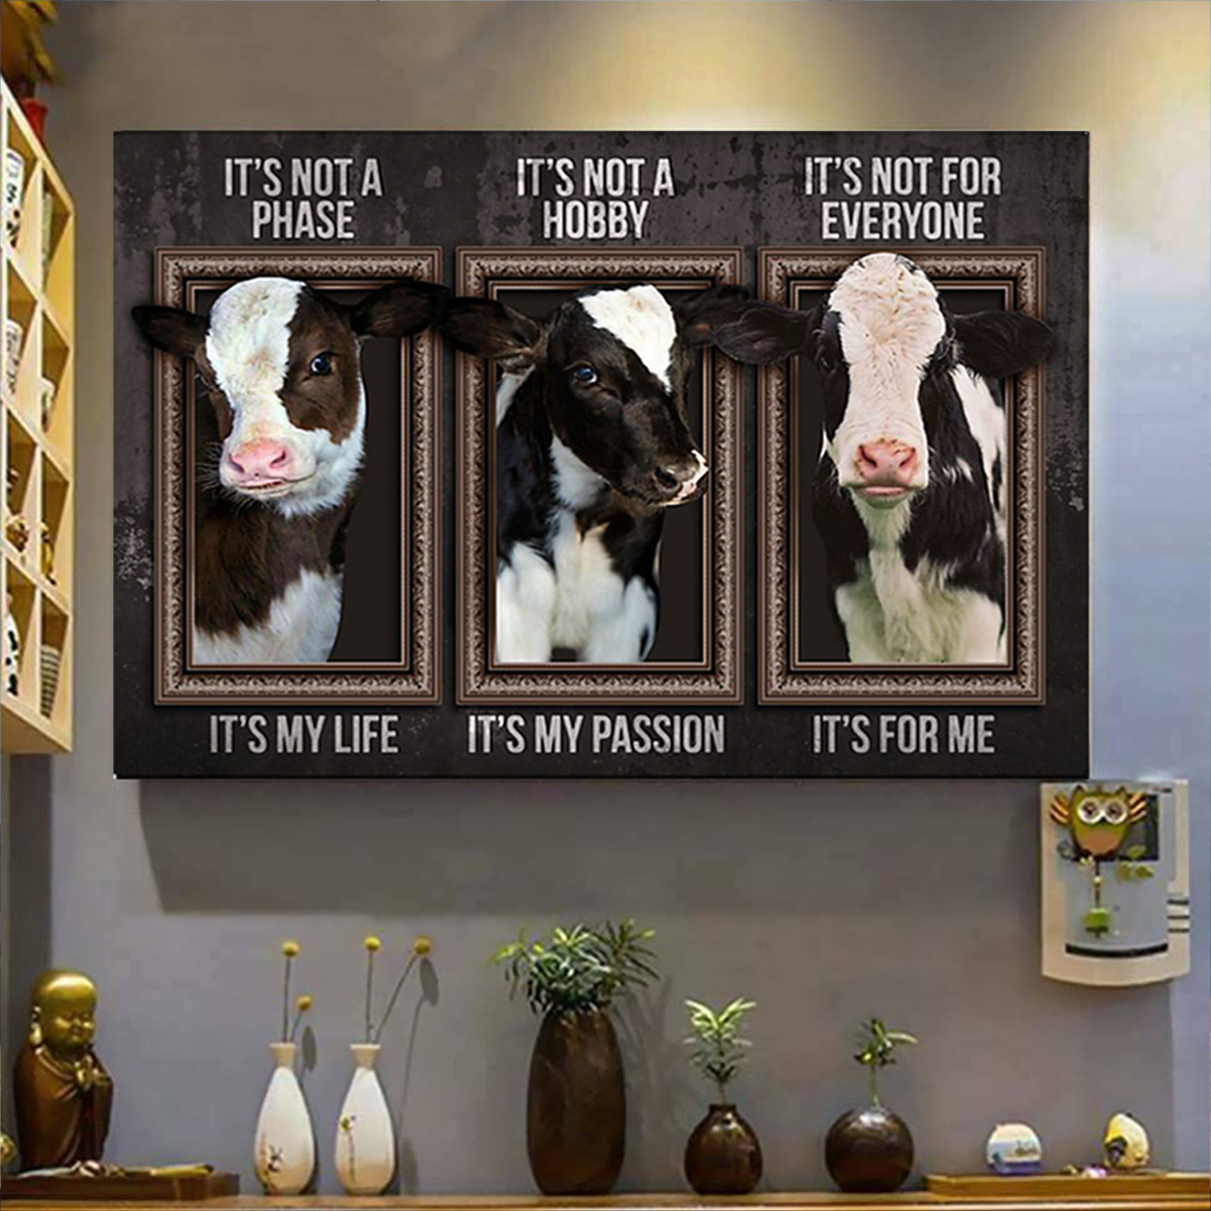 Dairy cattle it's not a phase poster A2